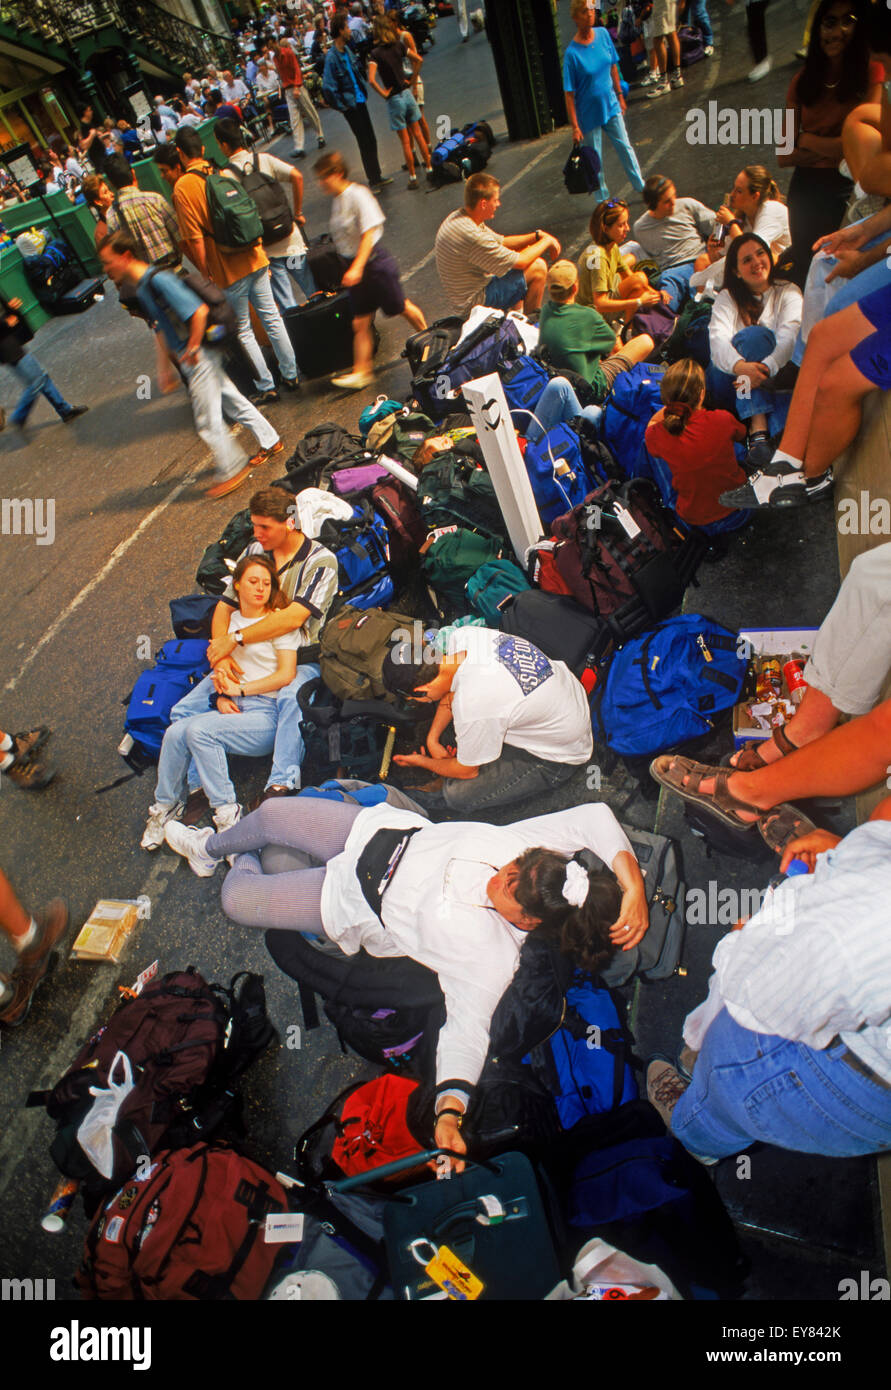 International backpackers waiting in train station in Europe - Stock Image